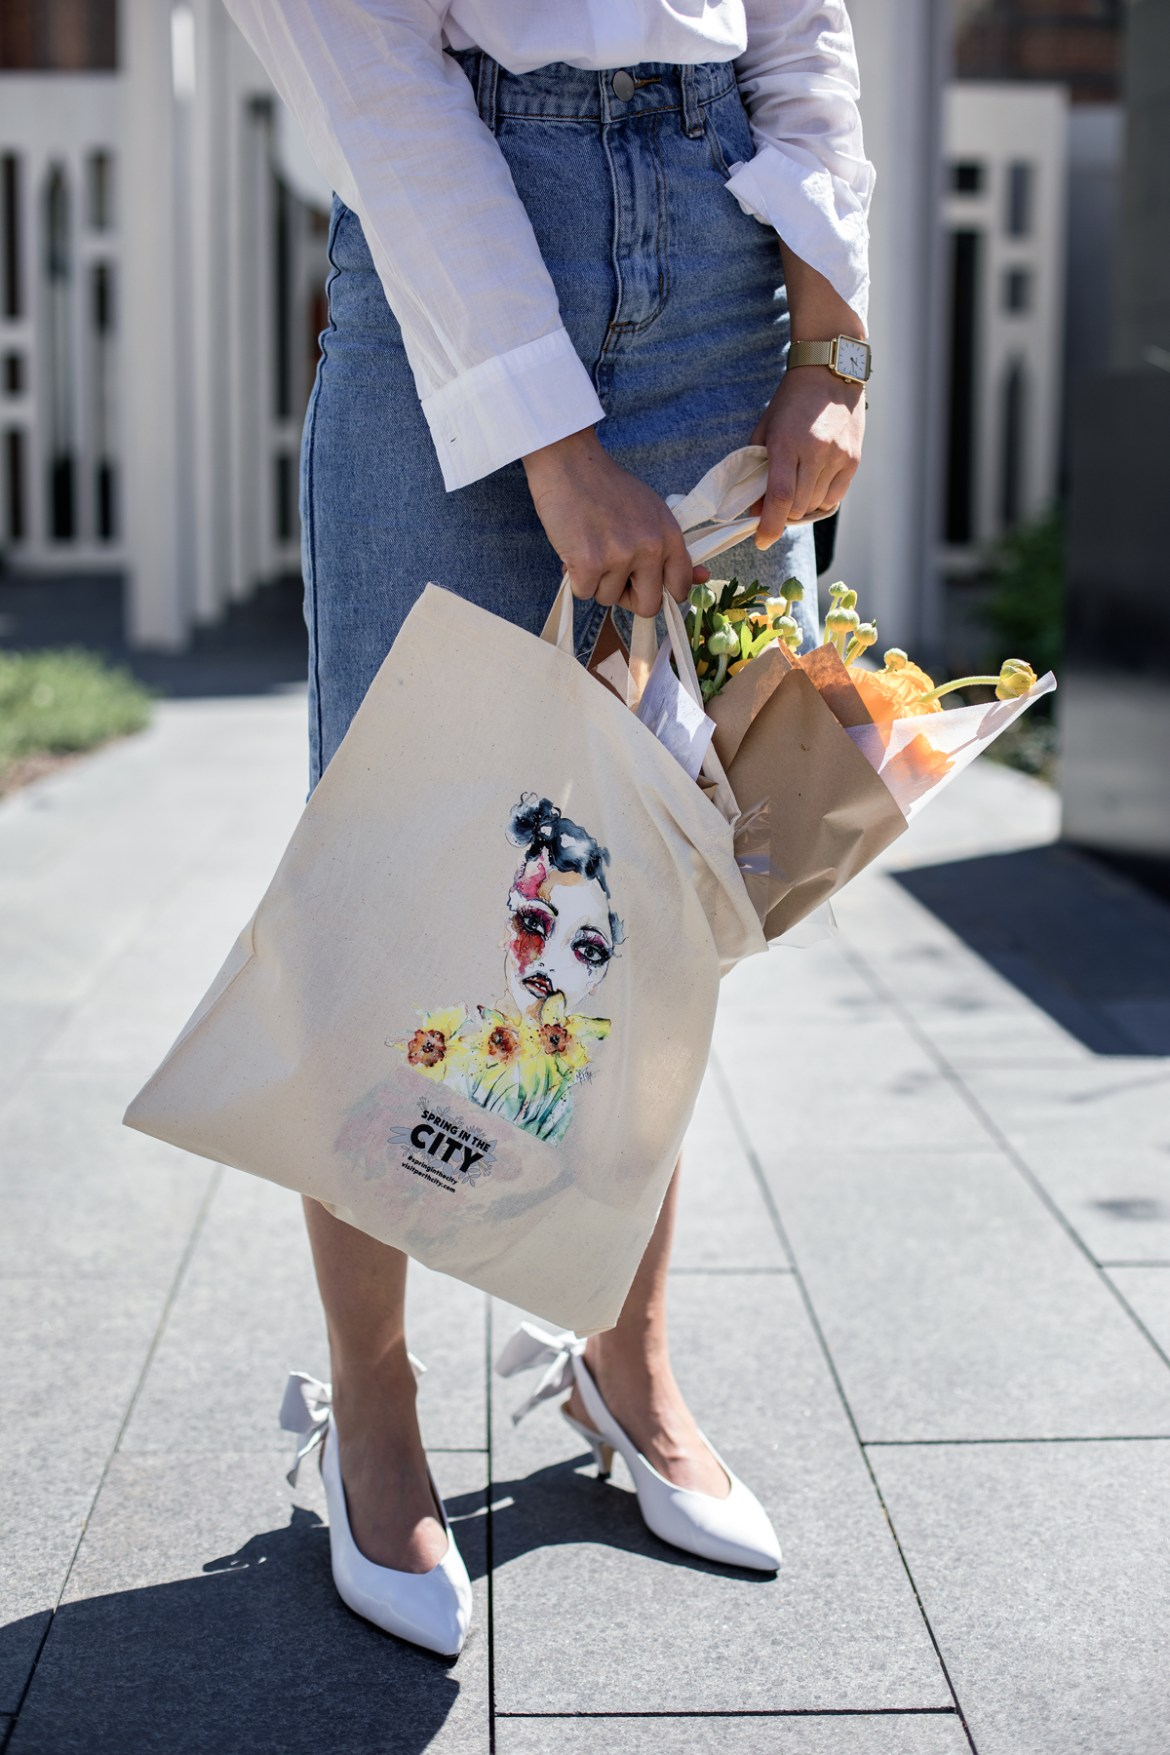 City of Perth Spring in the City tote bag